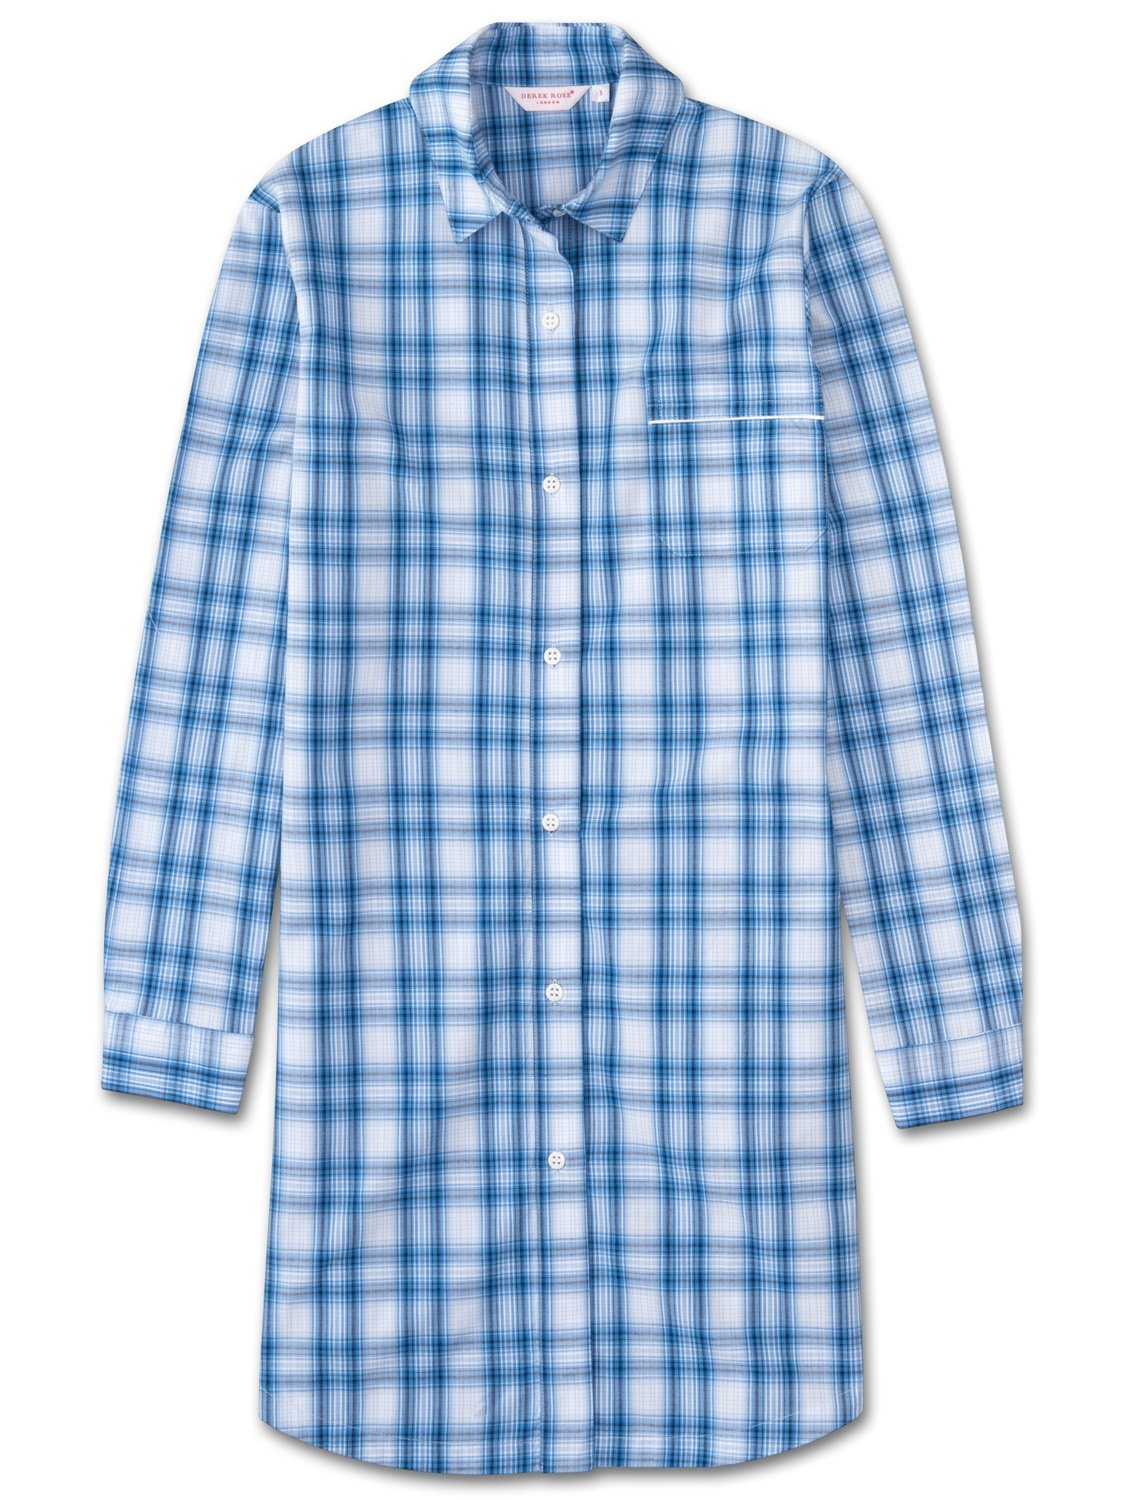 Women's Nightshirt Ranga 30 Cotton Check Blue